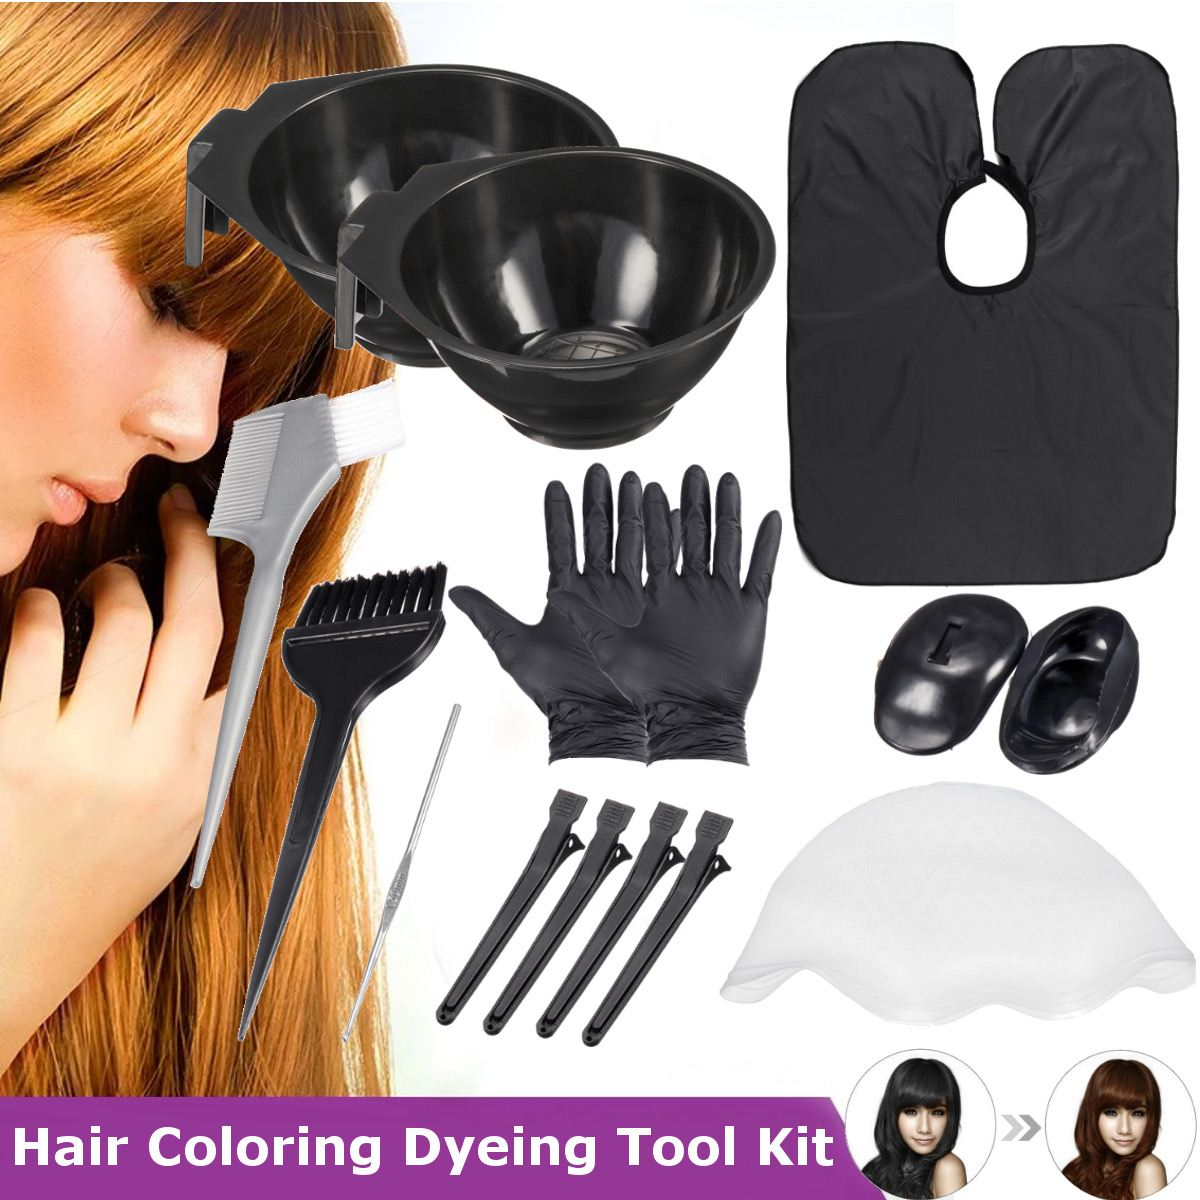 Salon Hair Color Dye Bowl Comb Brushes Tool Kit Set With Highlighting Dye Cap Tint Coloring Dye Bowl Comb Brush Styling Tool